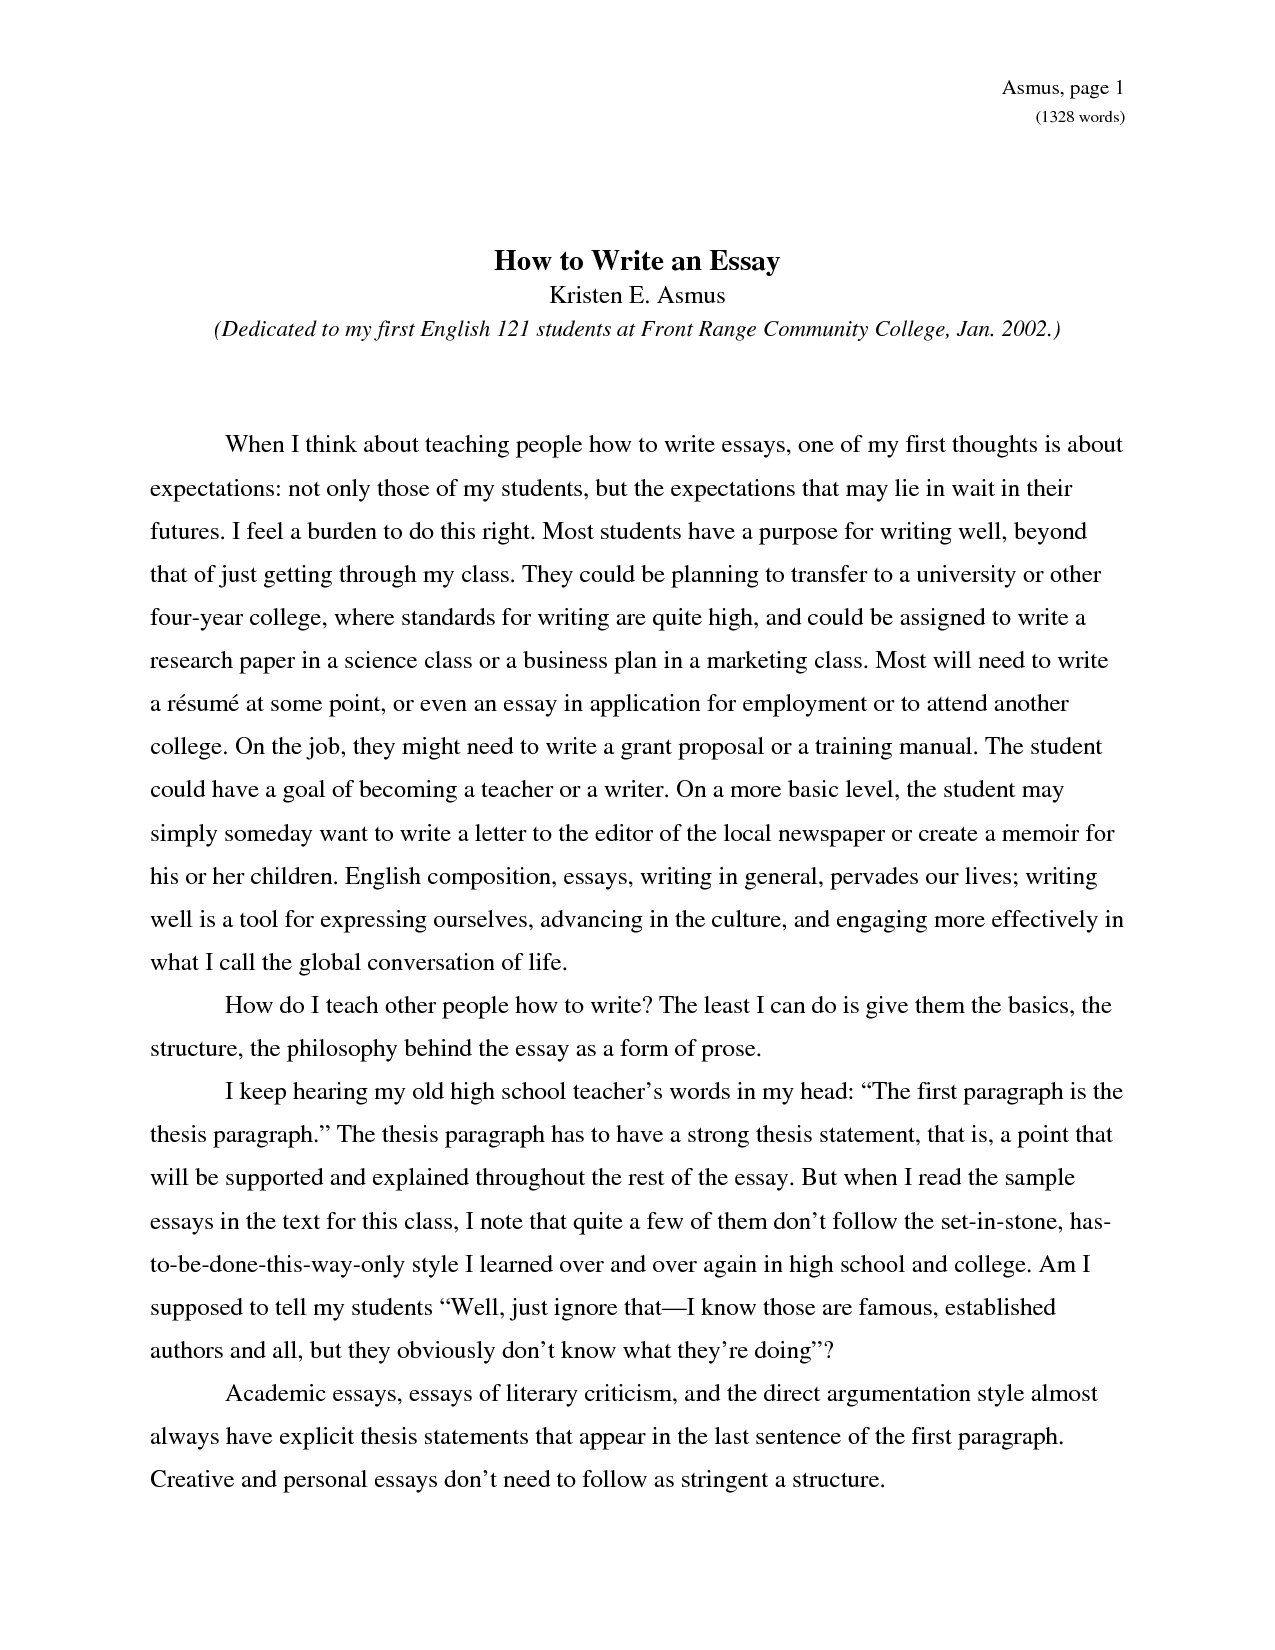 Buying an essay student life pdf